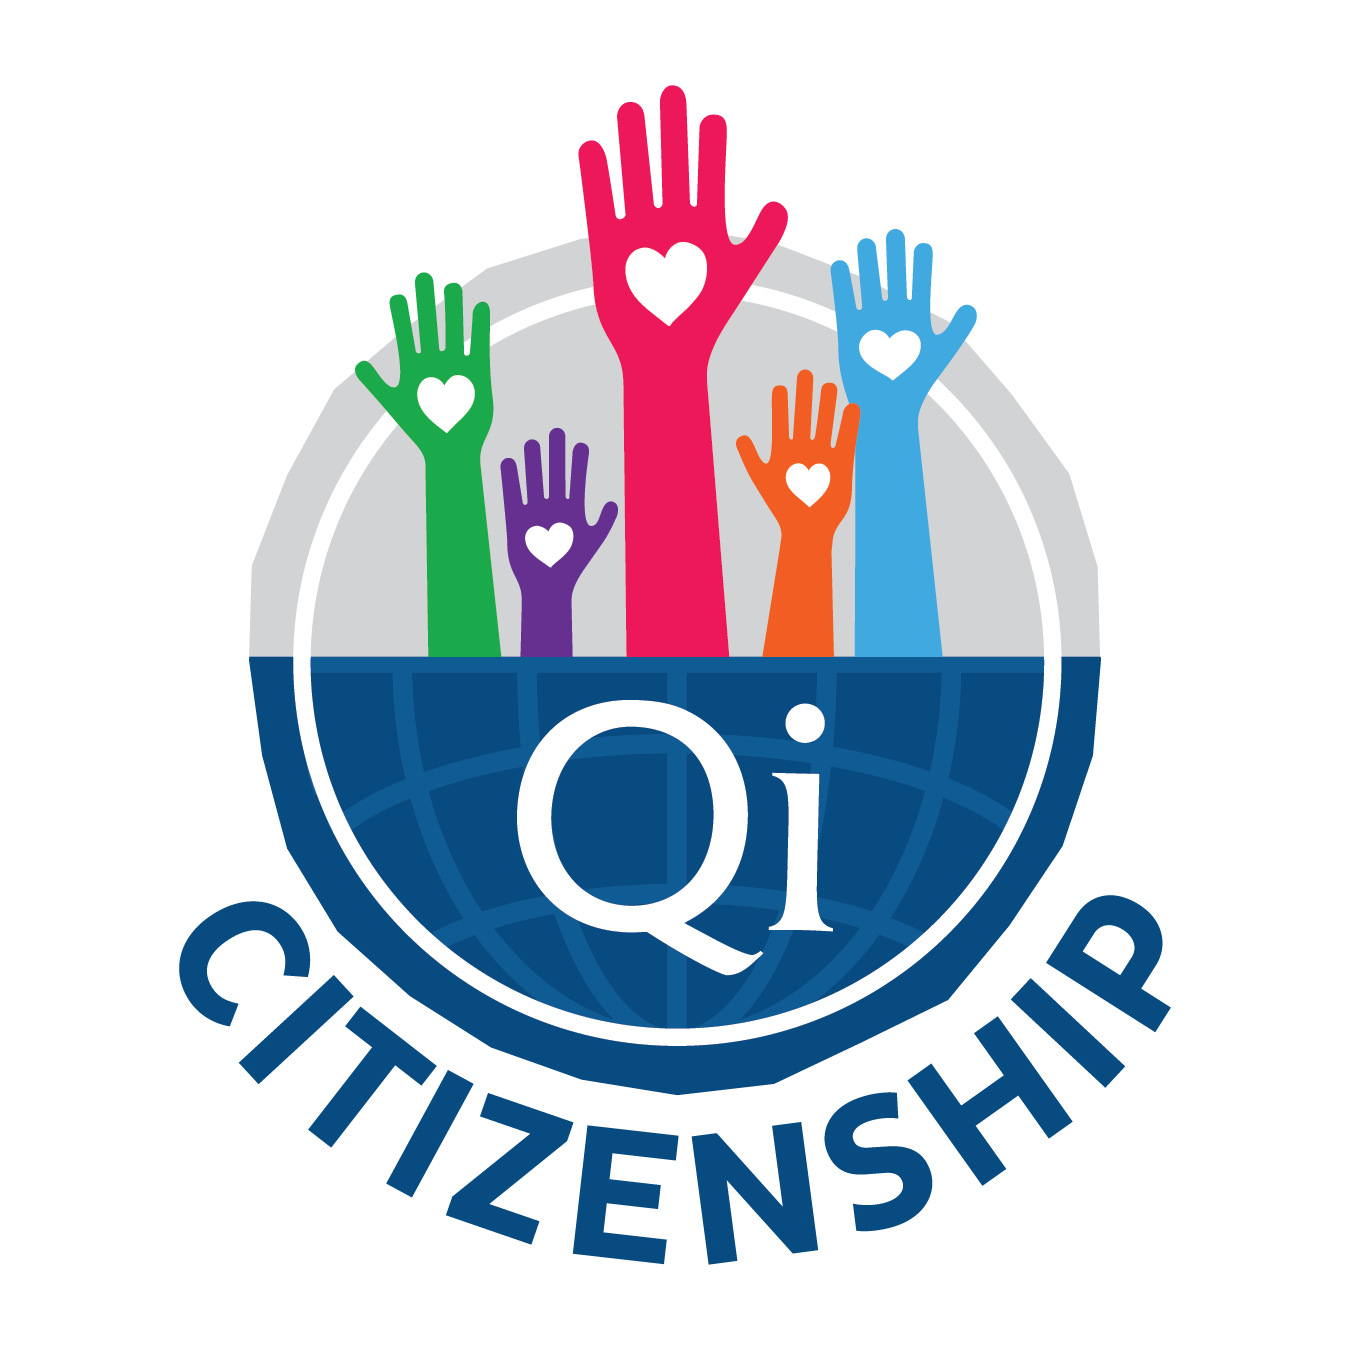 Missions clipart citizenship canadian. Qi an awesome year